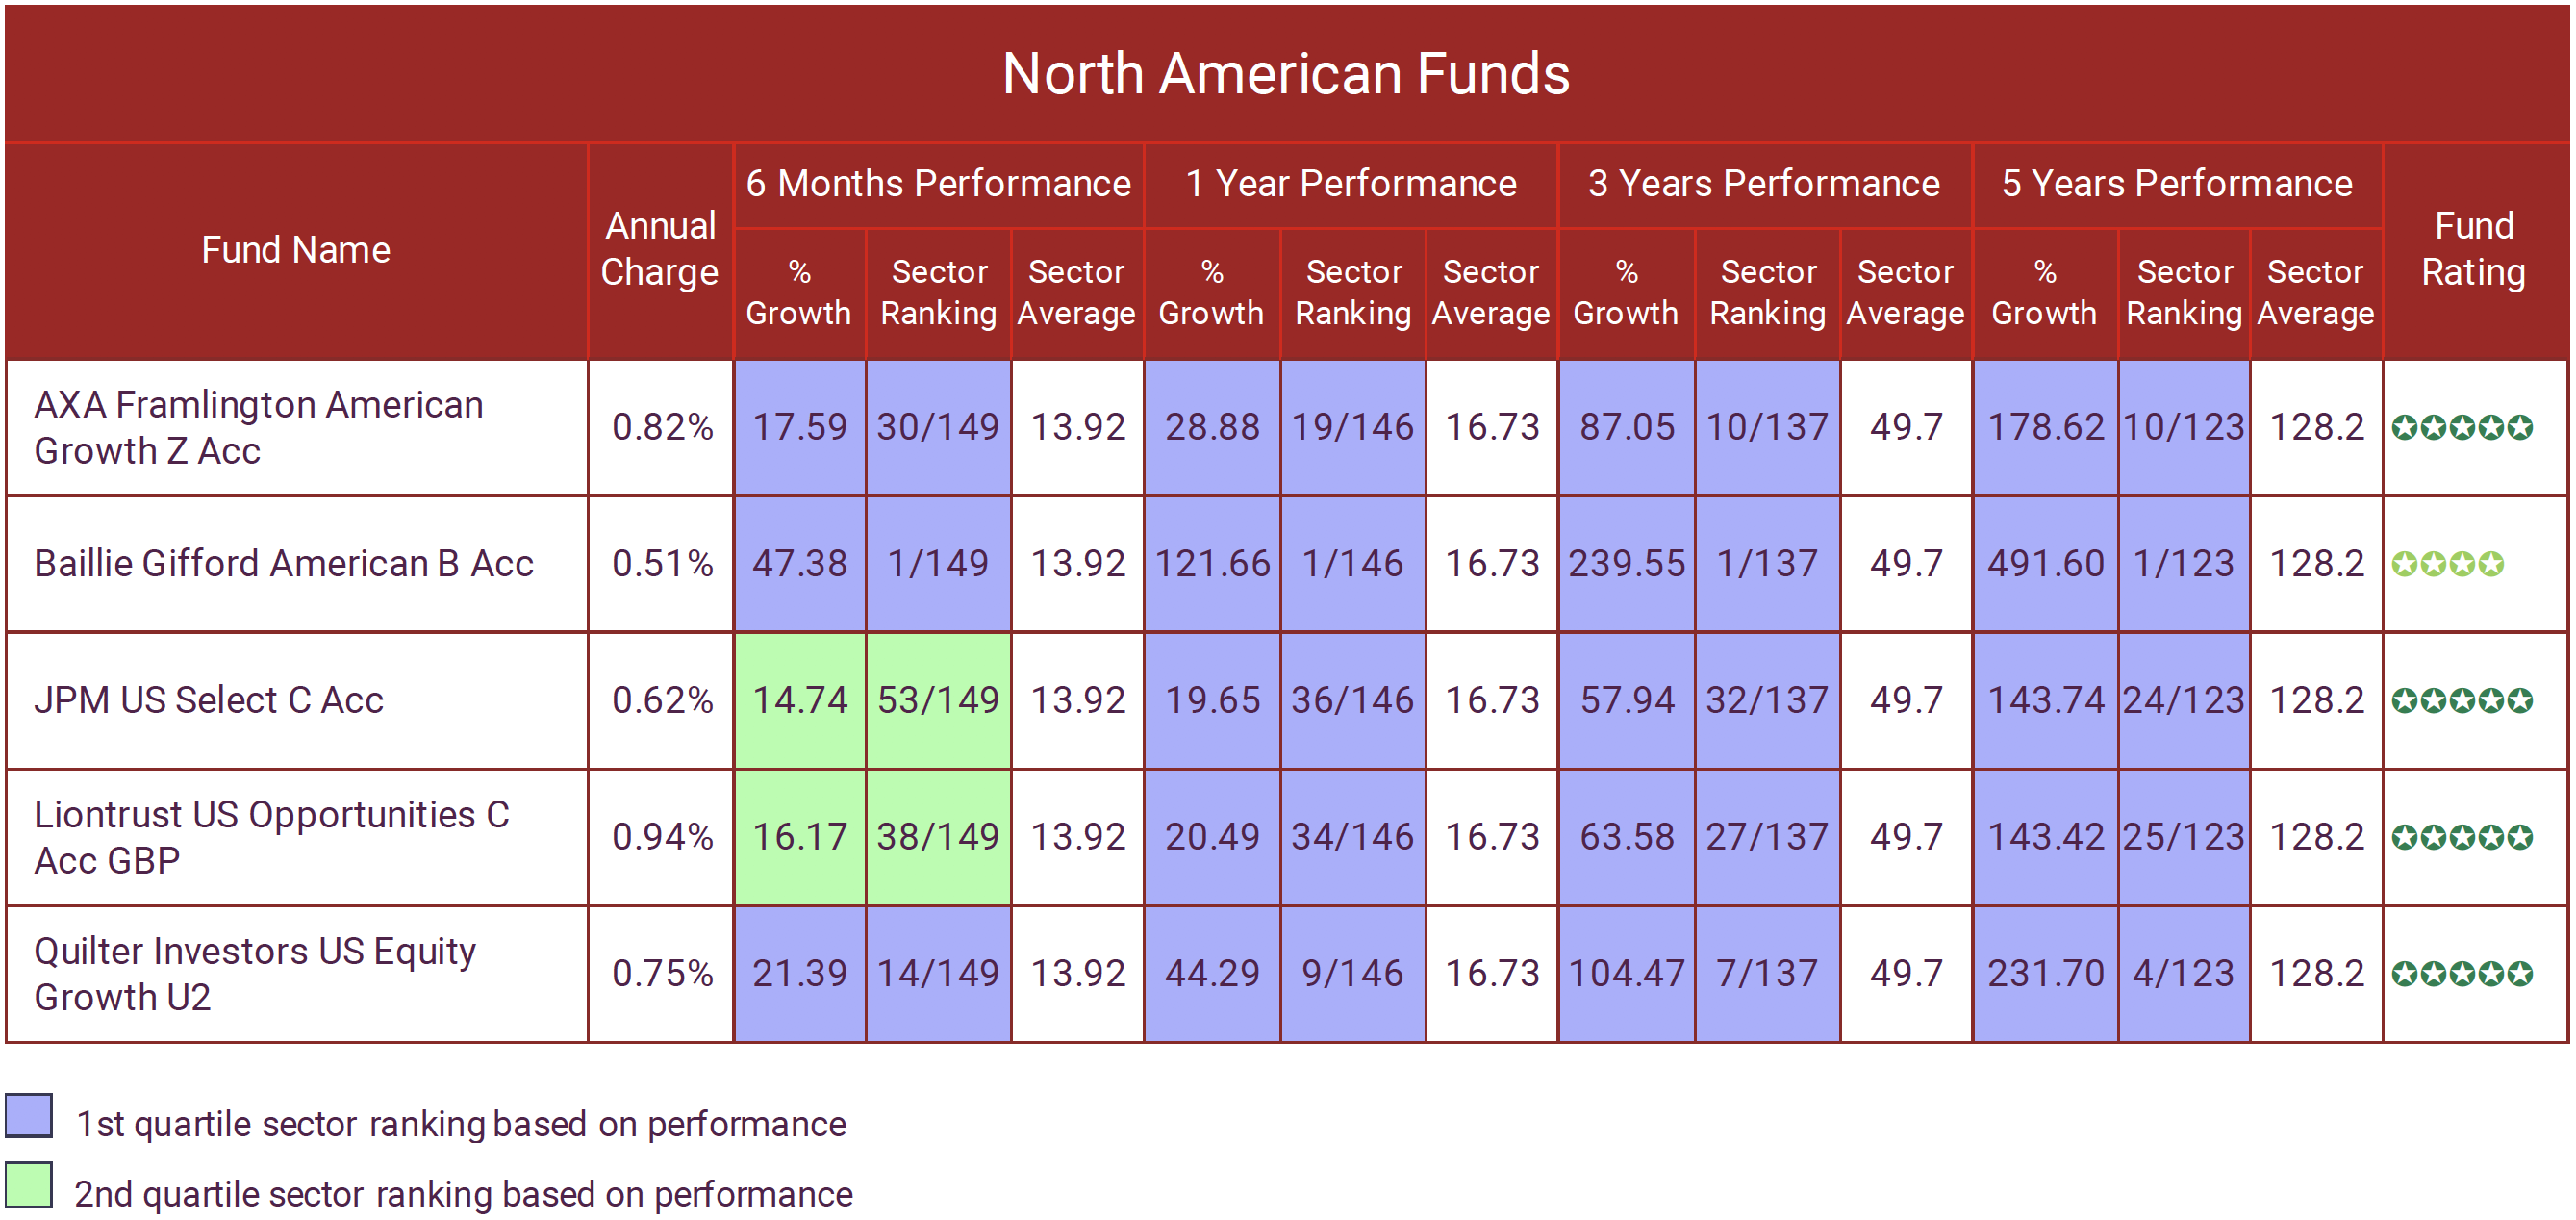 NORTH AMERICAN FUNDS MARCH 2021